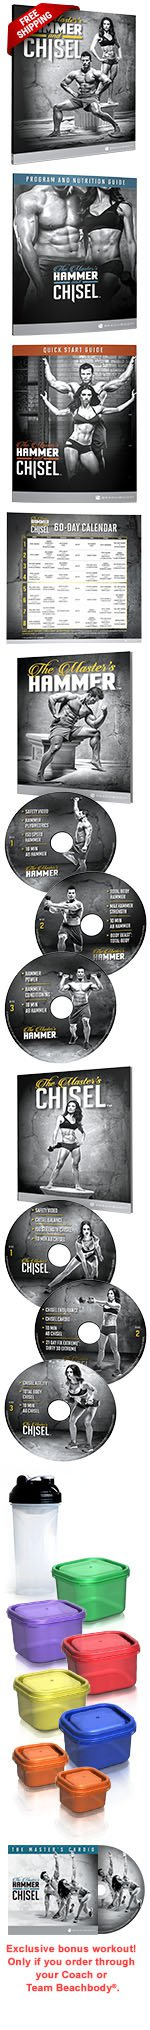 Hammer and Chisel Fitness Program